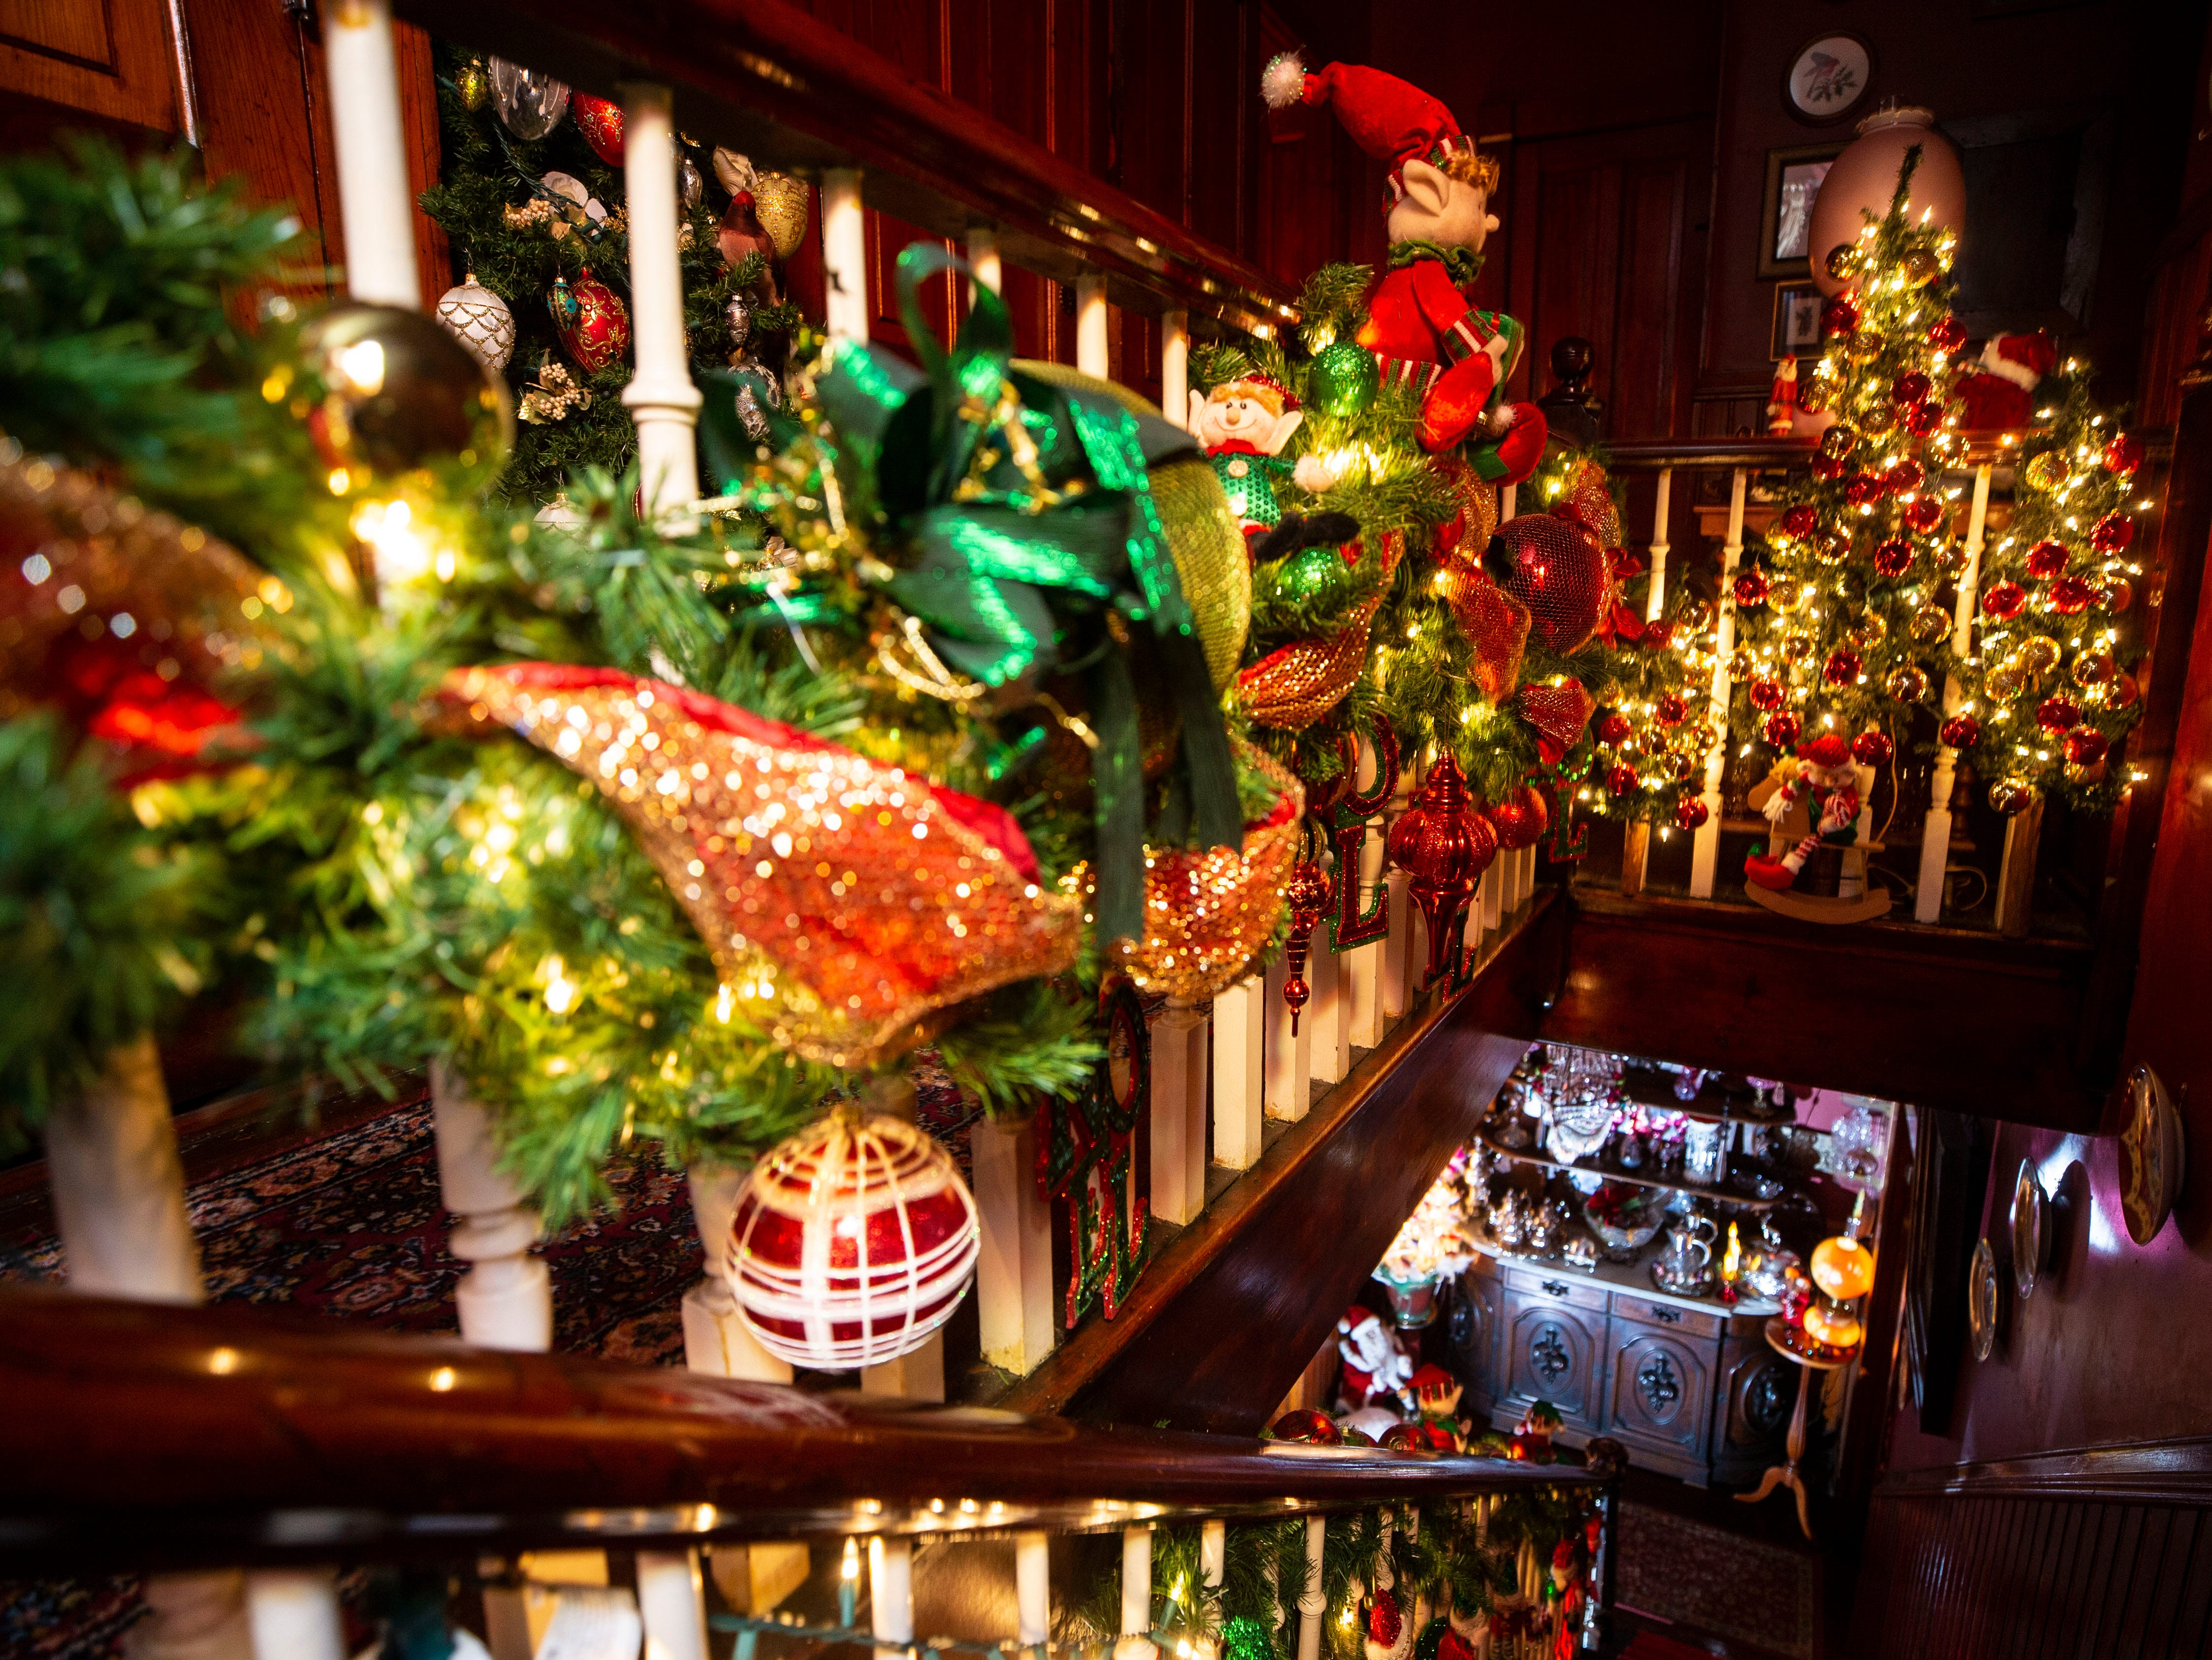 The second staircase is also filled with ornaments and garland. The Victorian-era, three-story home is filled with Christmas and Holiday lights, trees and ornaments that is part of the Old Louisville Holiday Home Tour.